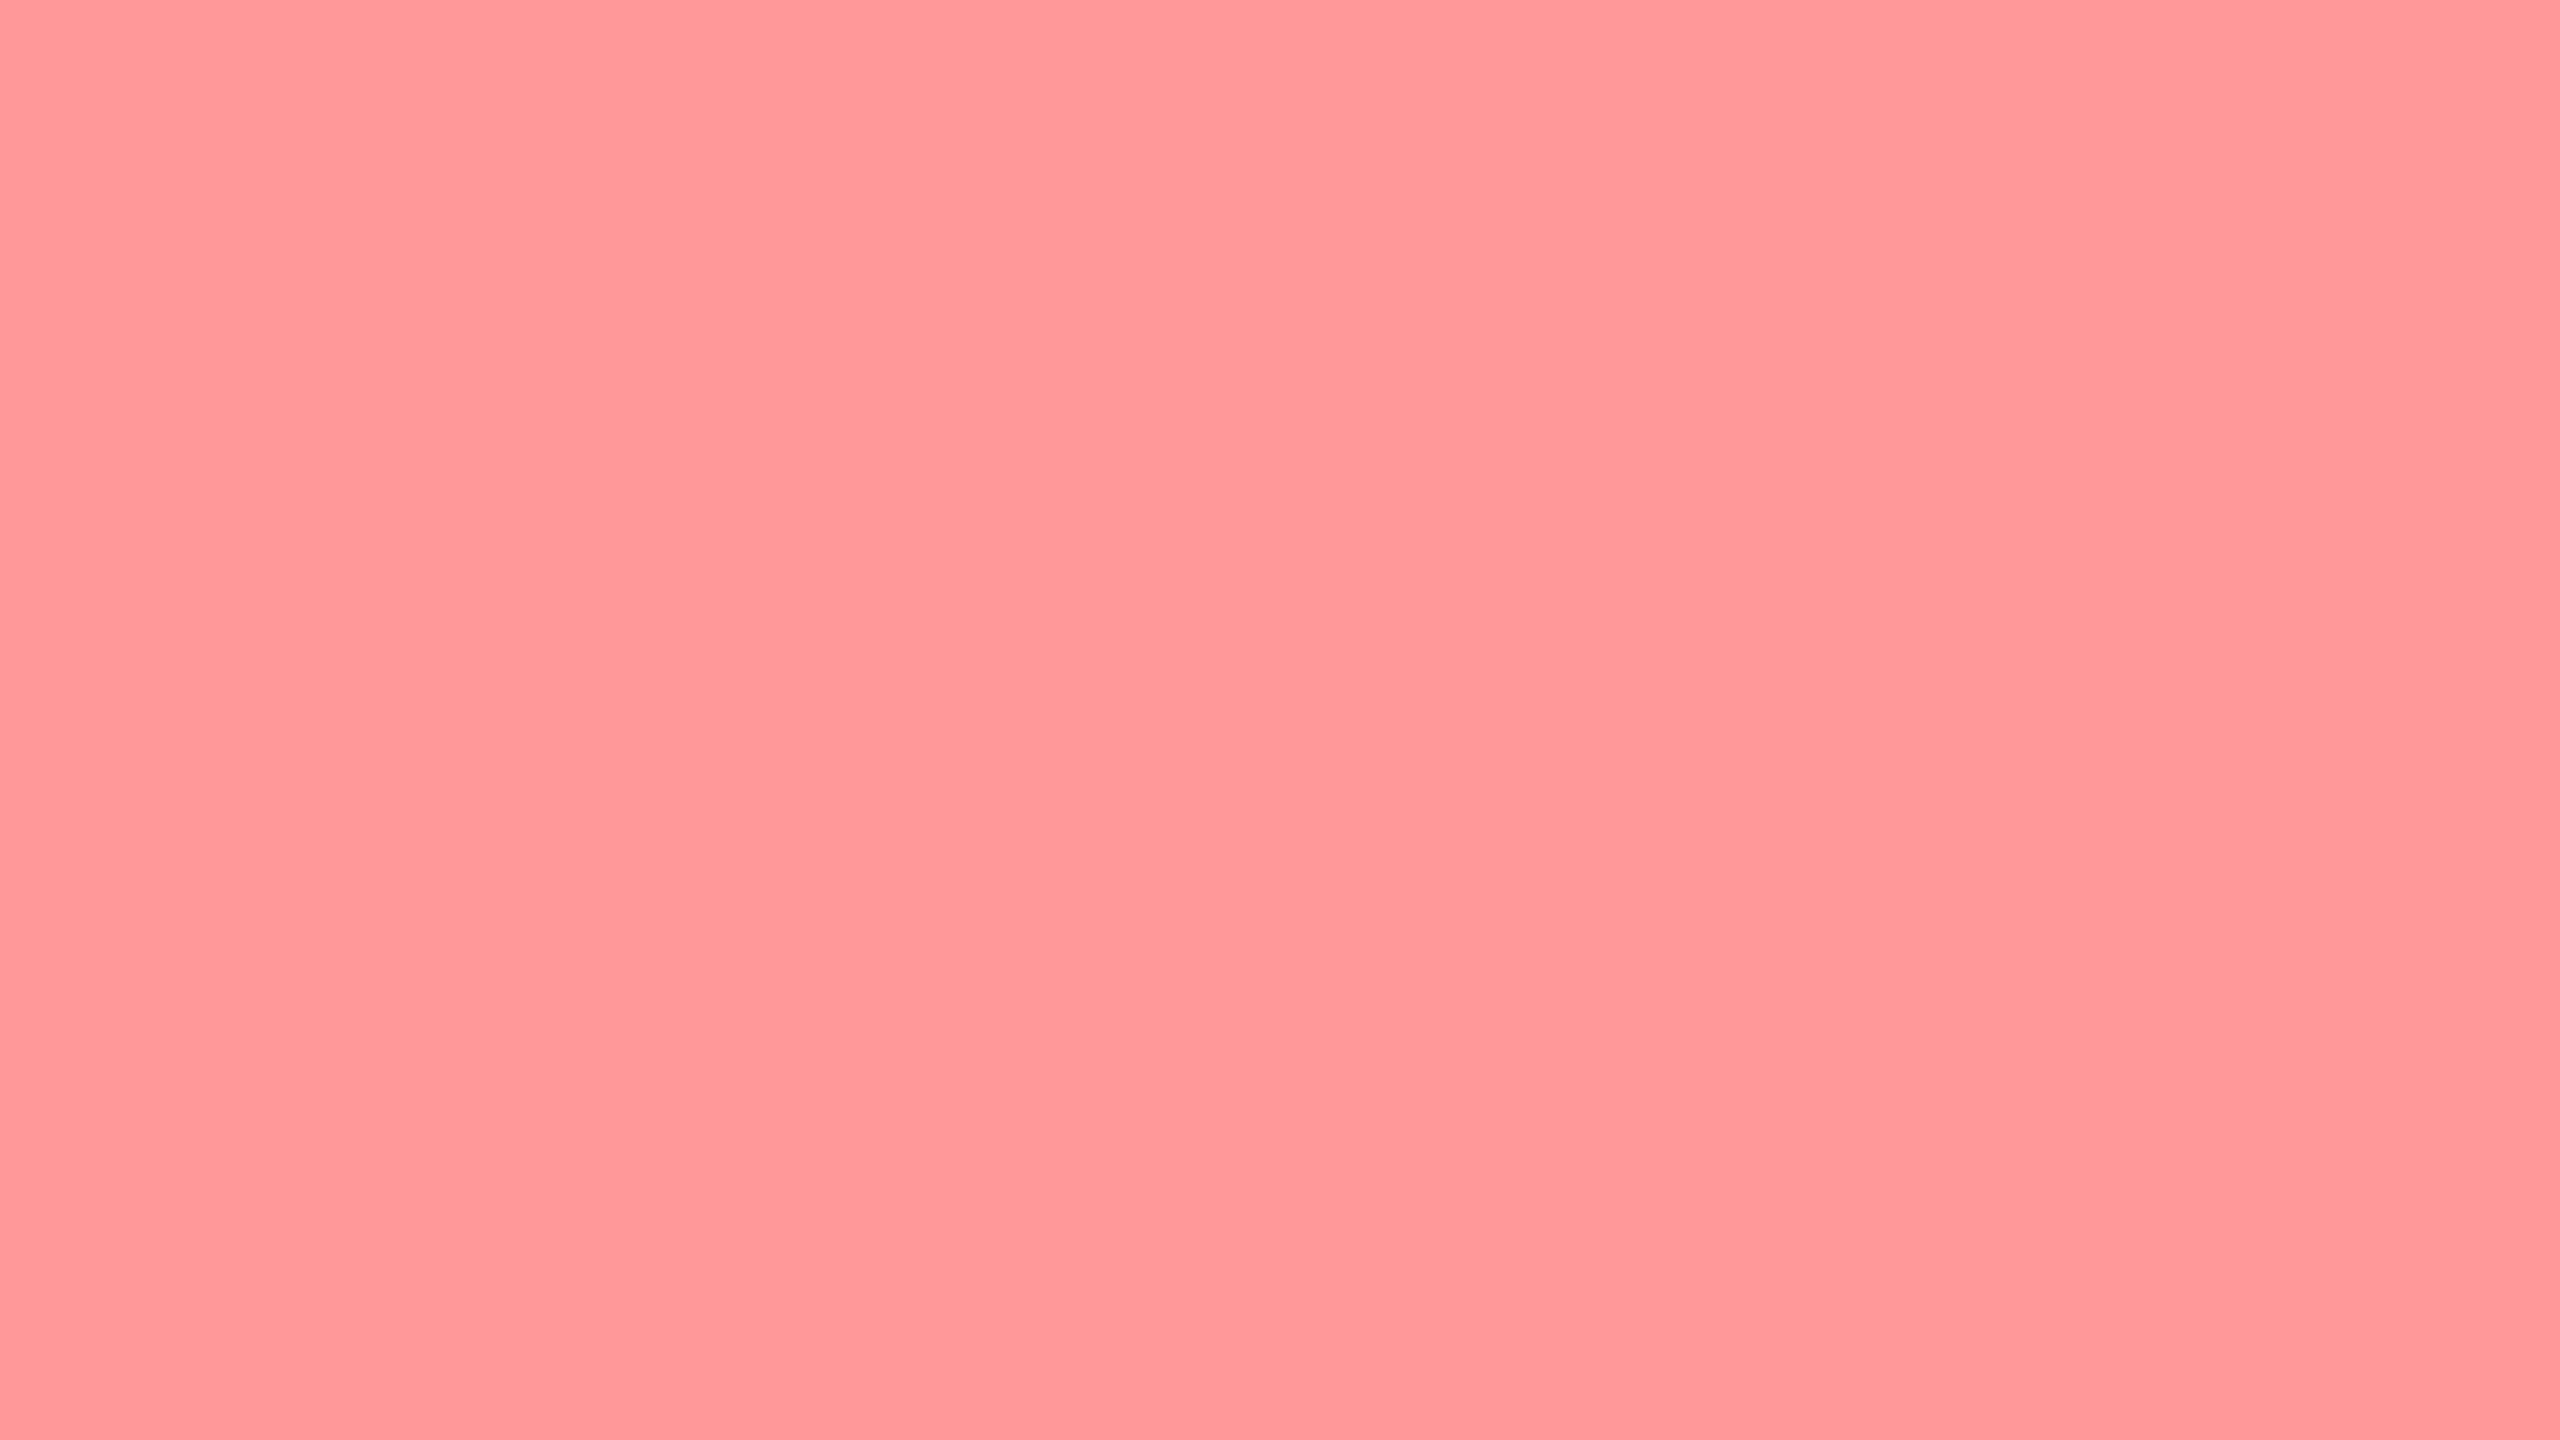 Cute Pink Wallpapers Download 2560x1440 Light Salmon Pink Solid Color Background